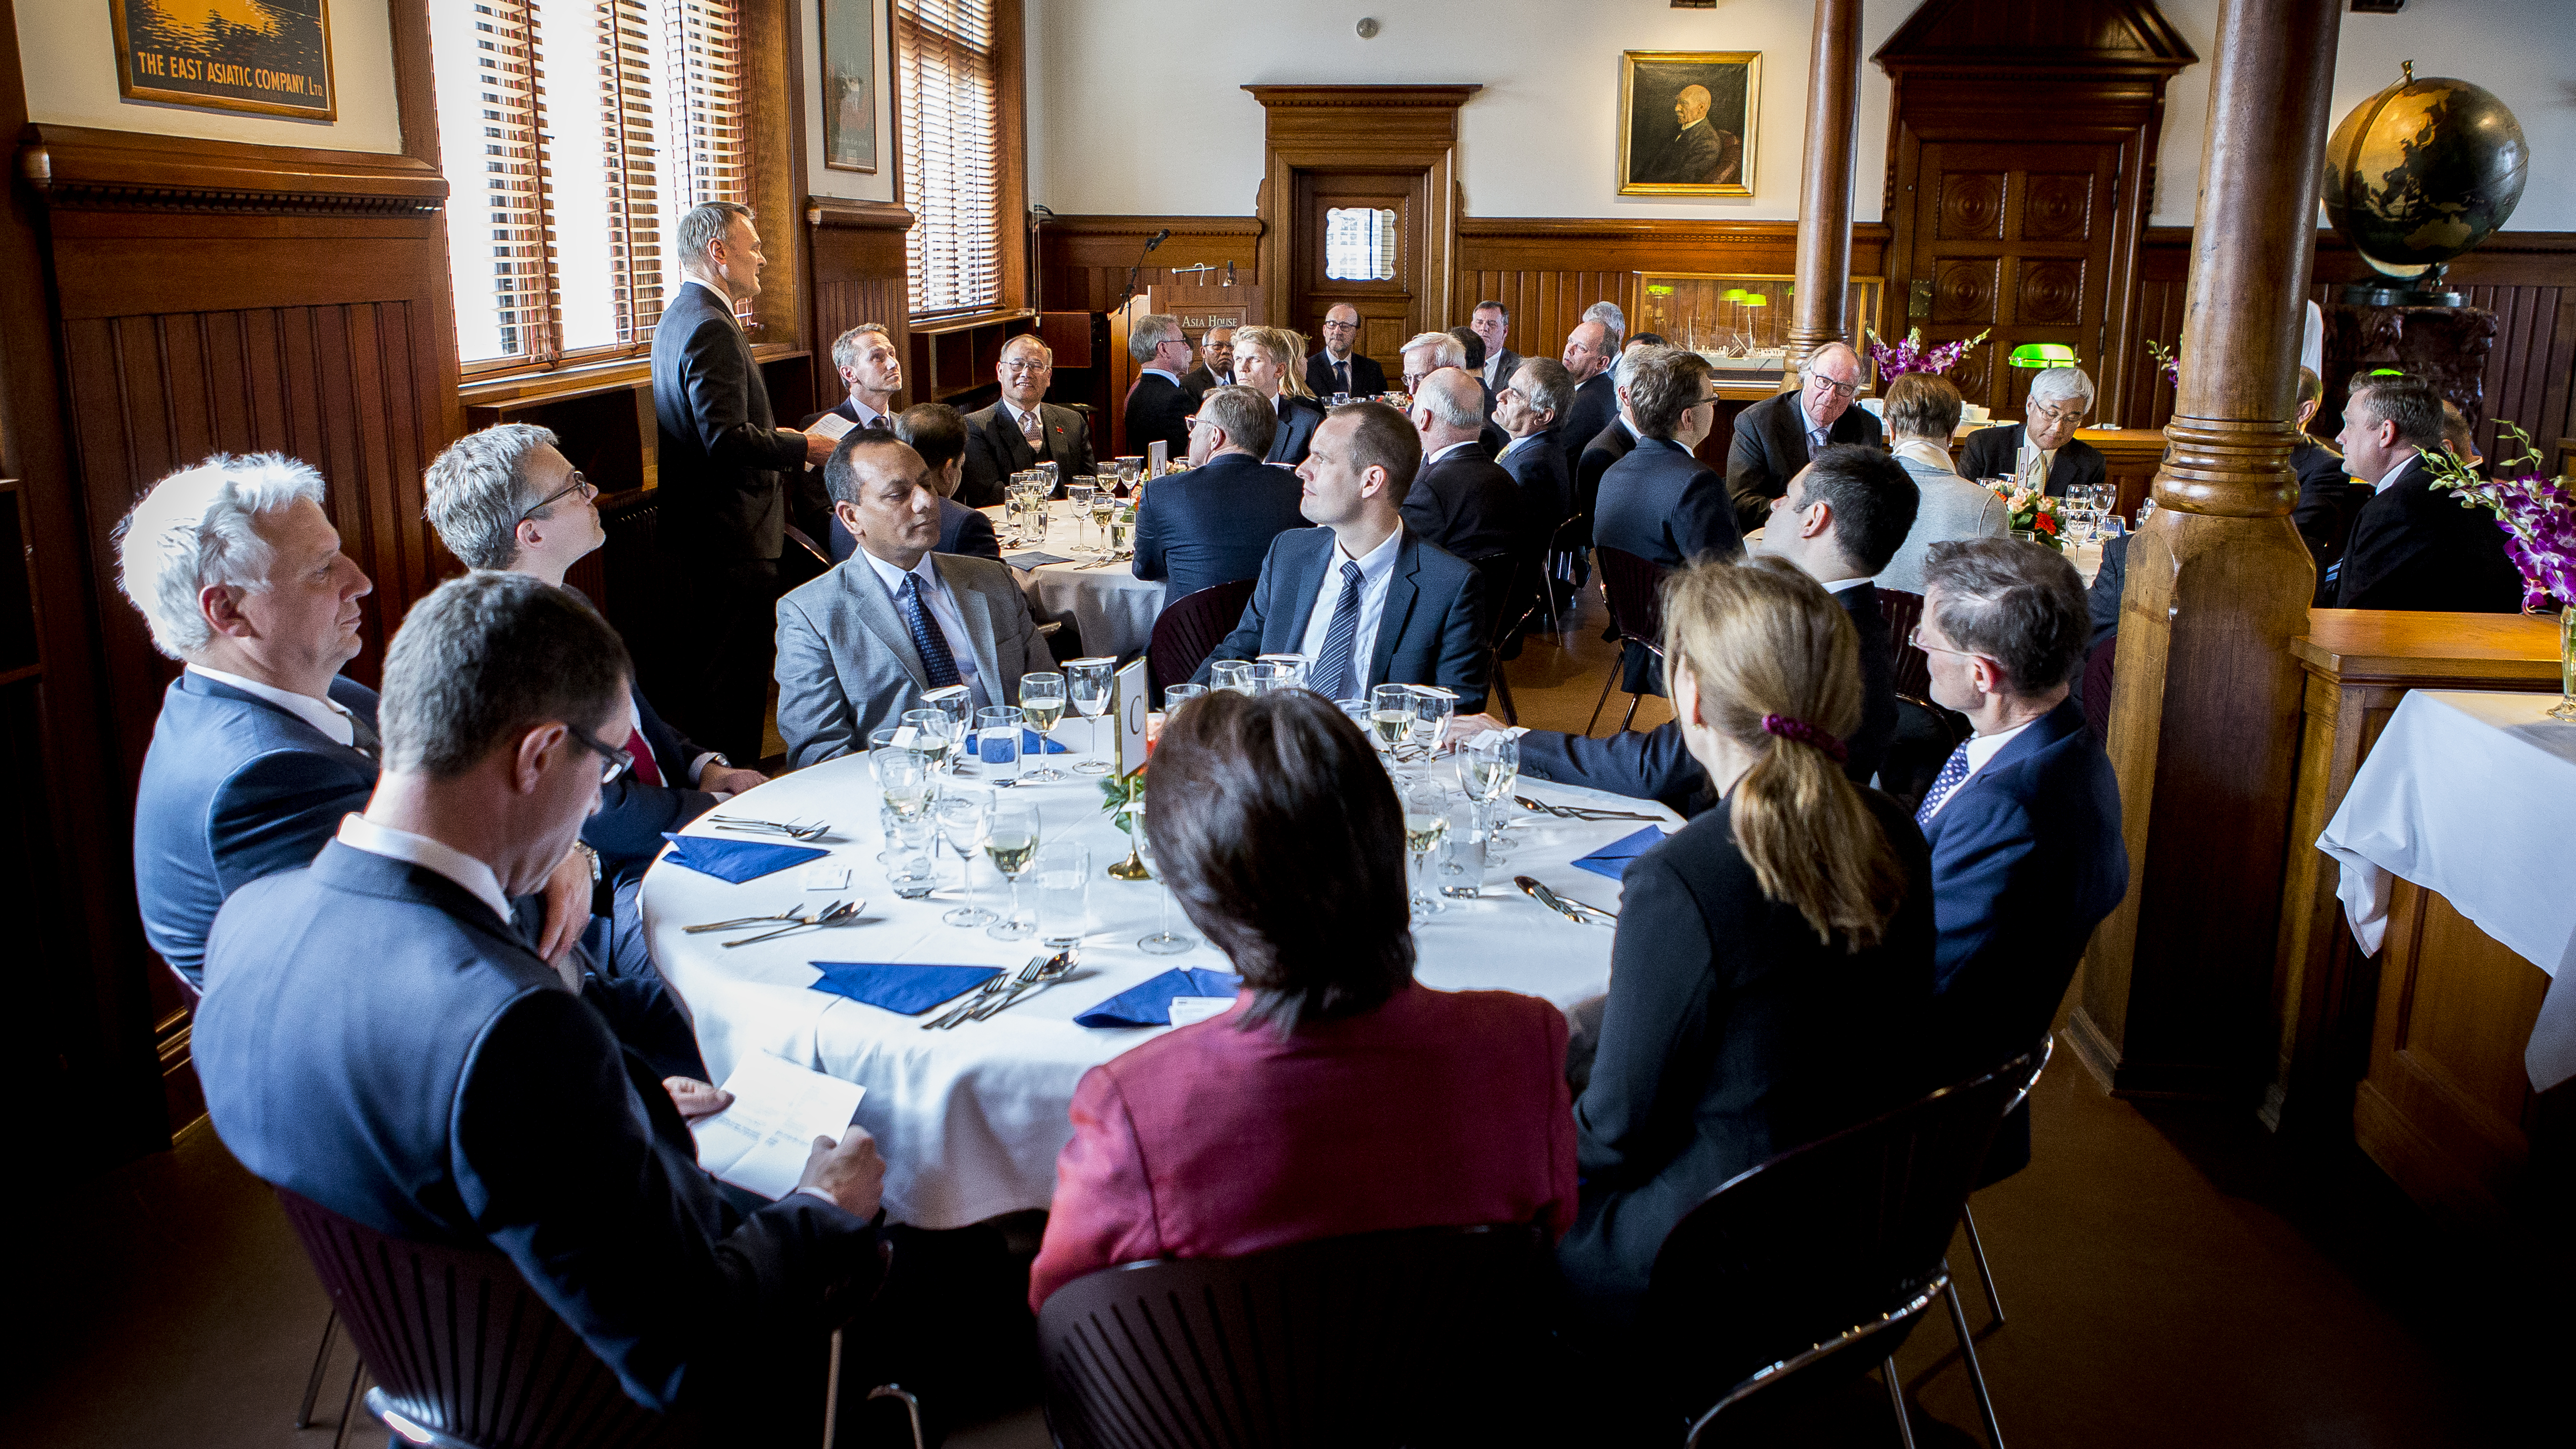 26 April 2017: Spring Luncheon for Ambassadors from Asian Countries and Asia House Partners